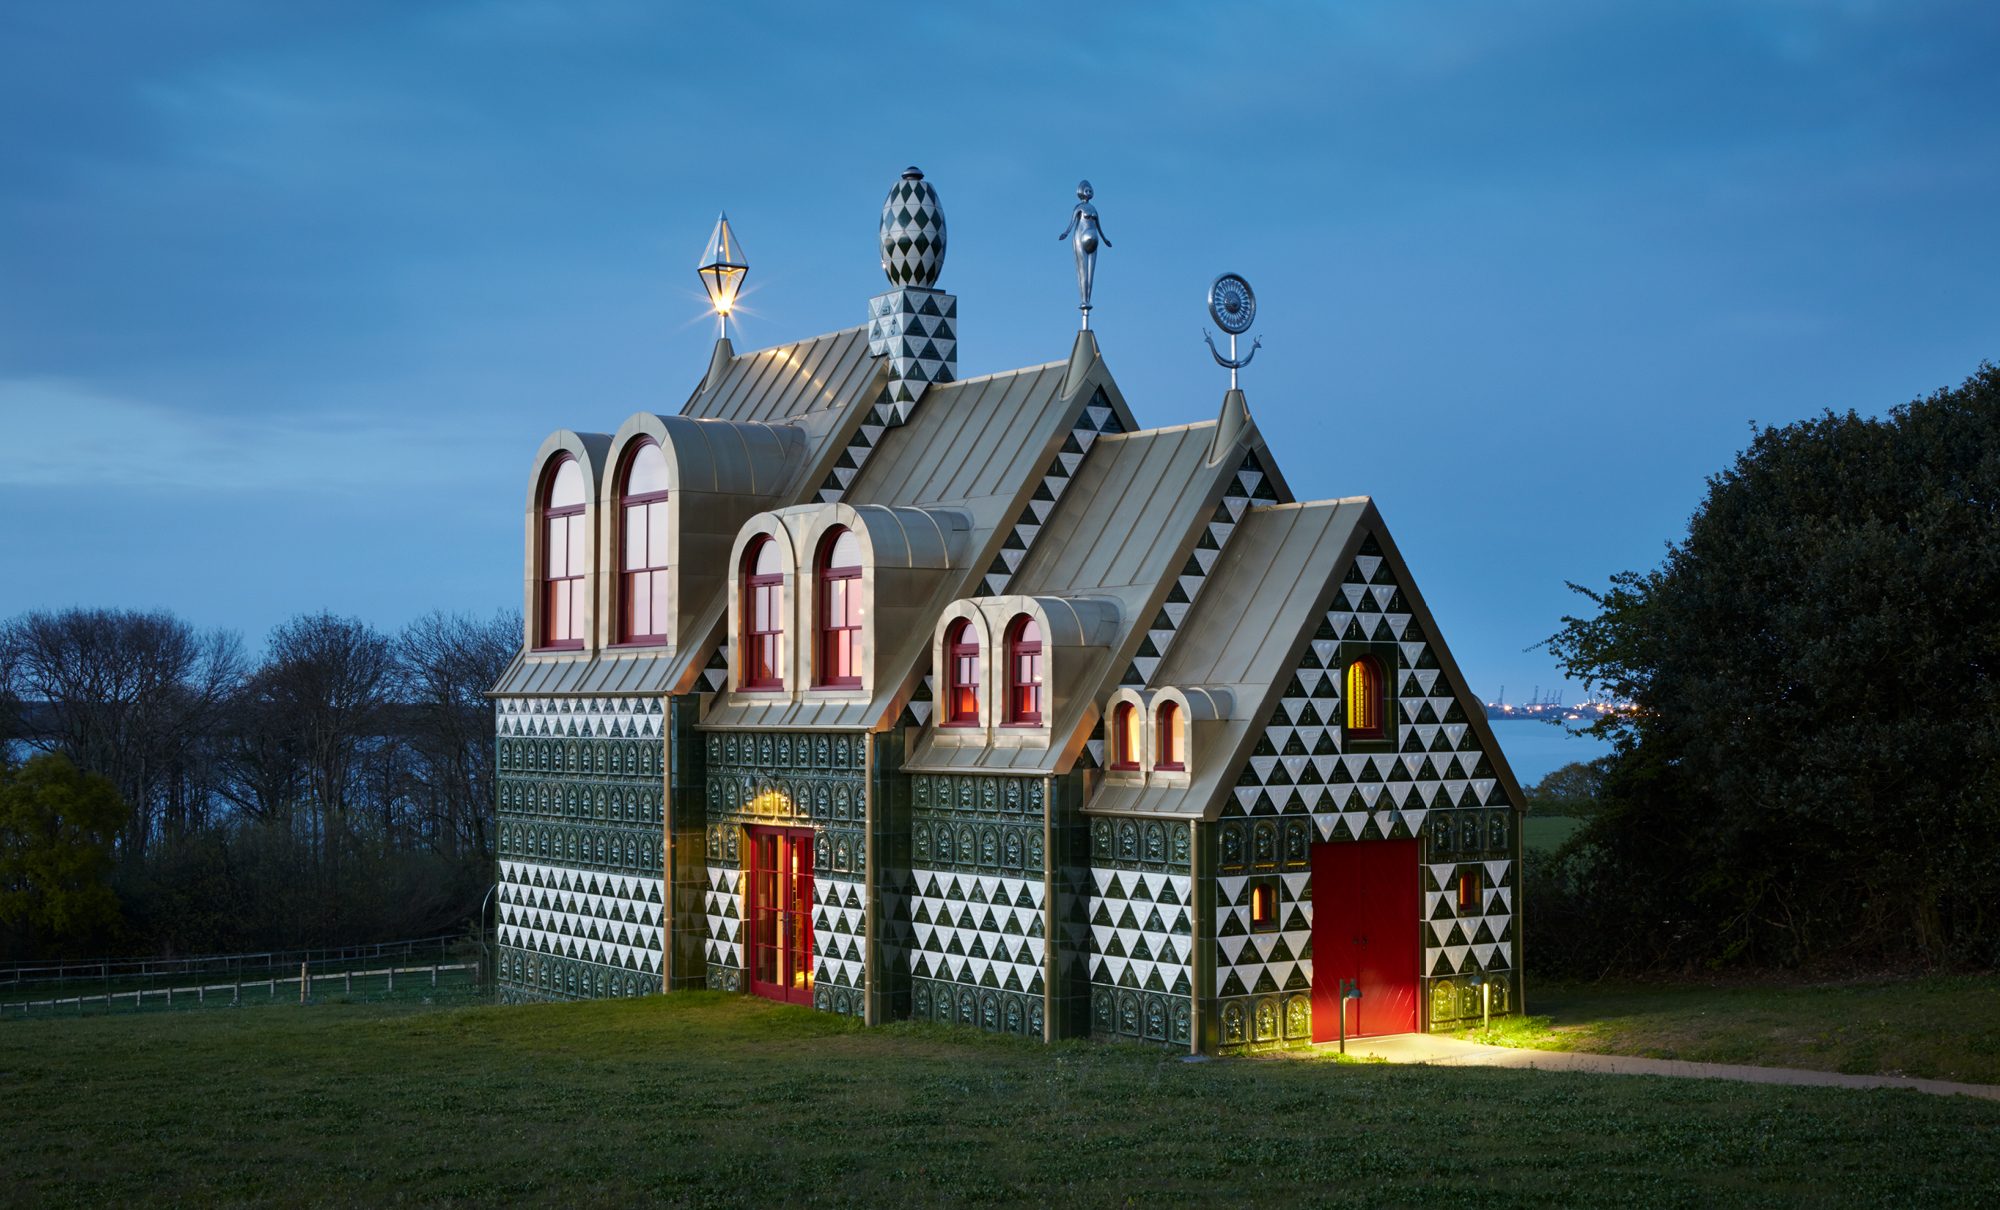 A House for Essex, Grayson Perry & Charles Holland (FAT), Wrabness, Essex, England